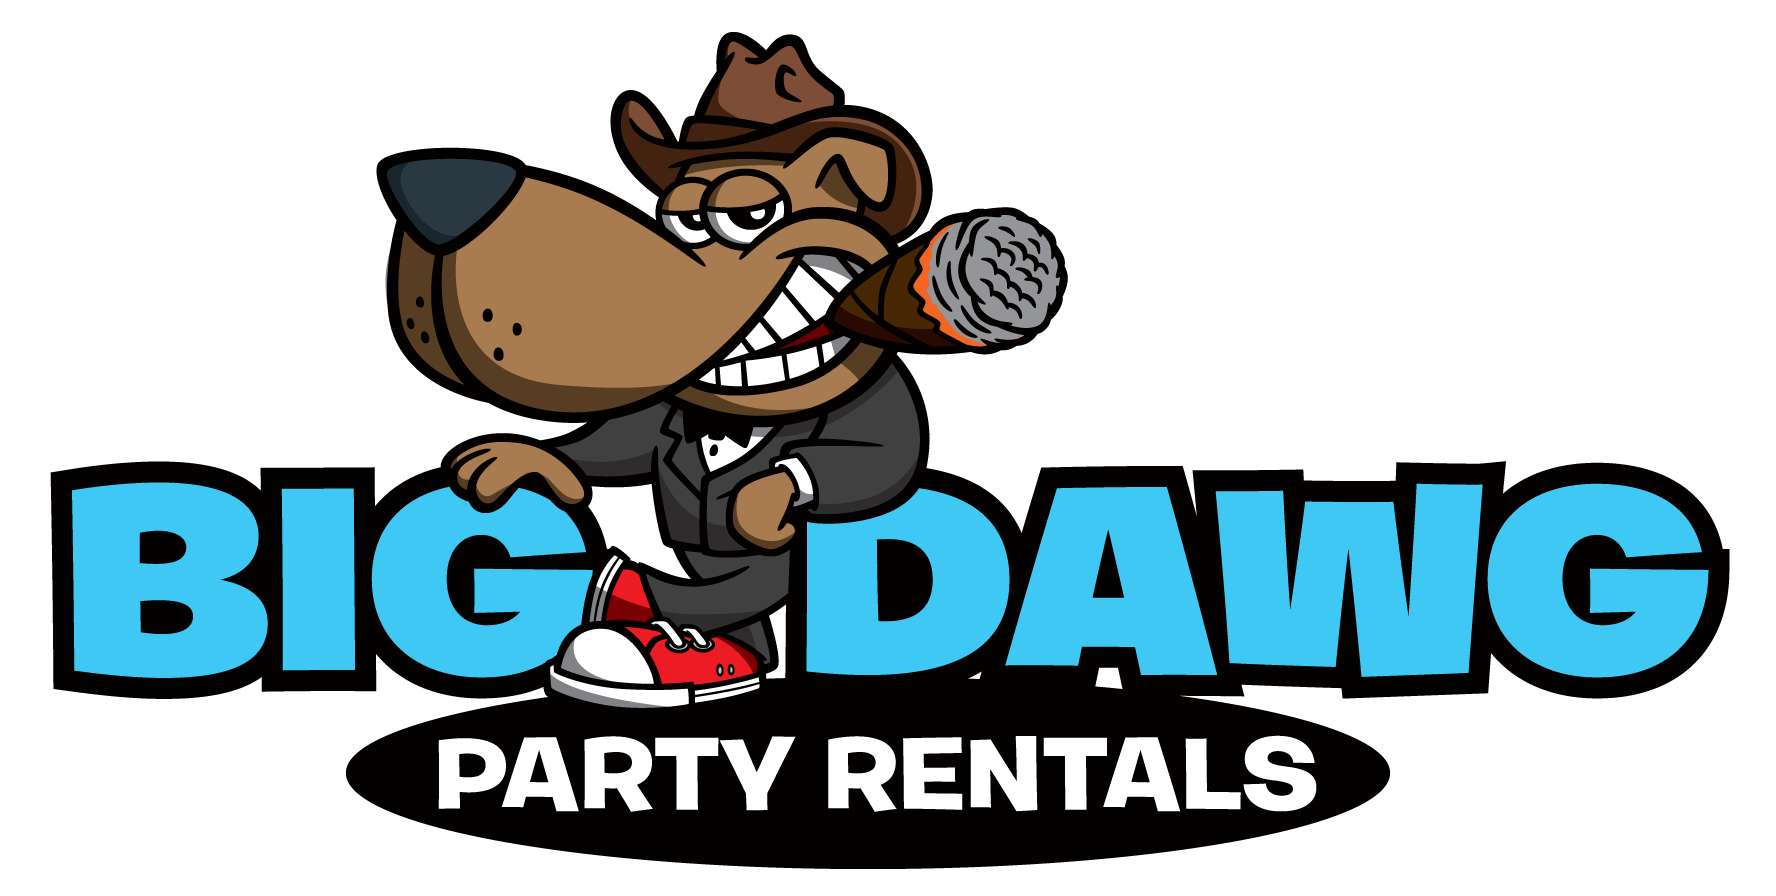 Big Dawg Party Rentals - Party Rentals NYC - Brooklyn, NY